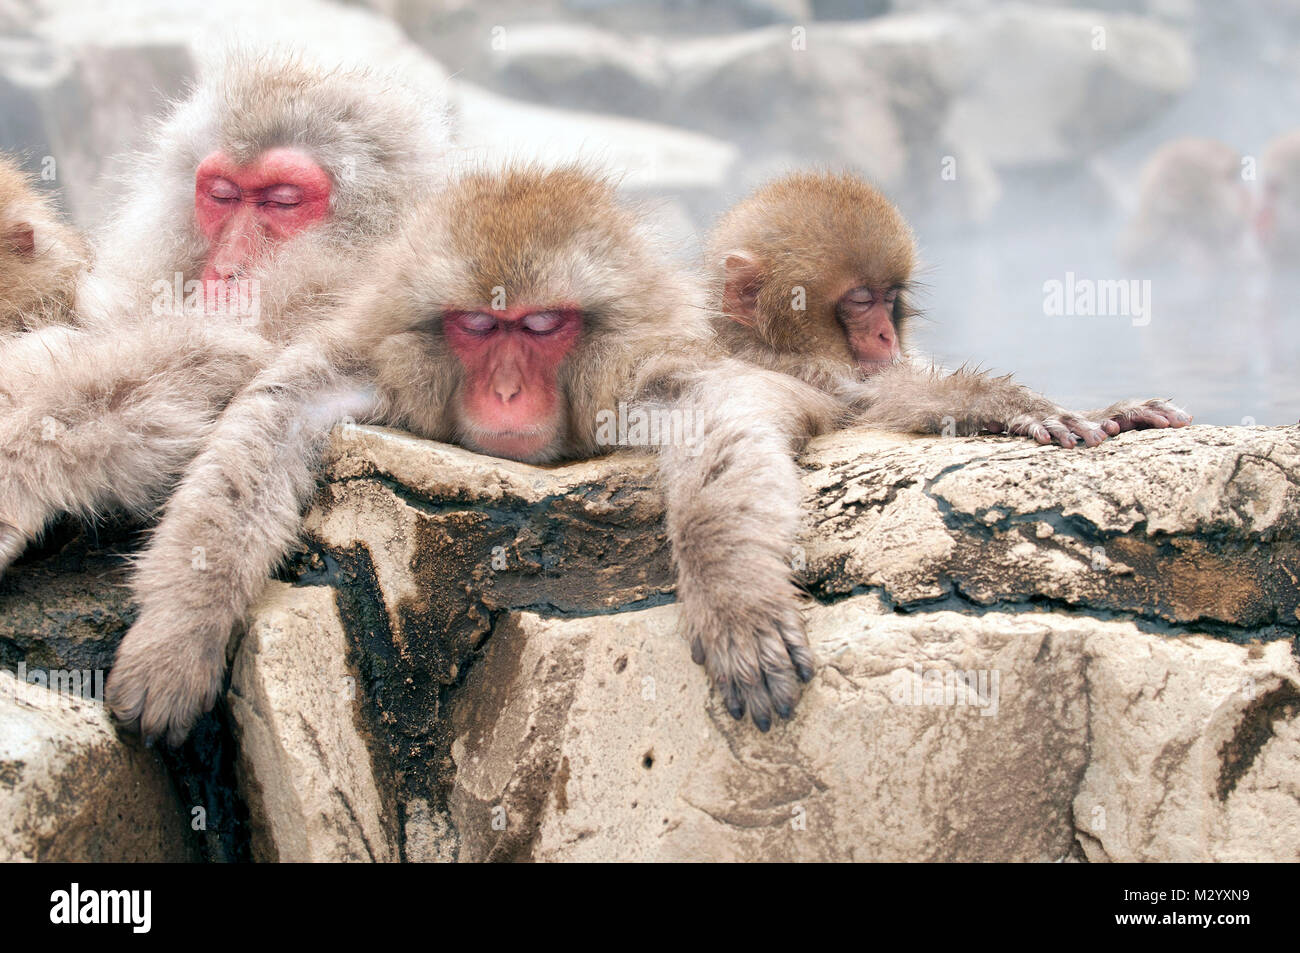 Japanese macaque or snow japanese monkey (Macaca fuscata) family in onsen, Japan Stock Photo